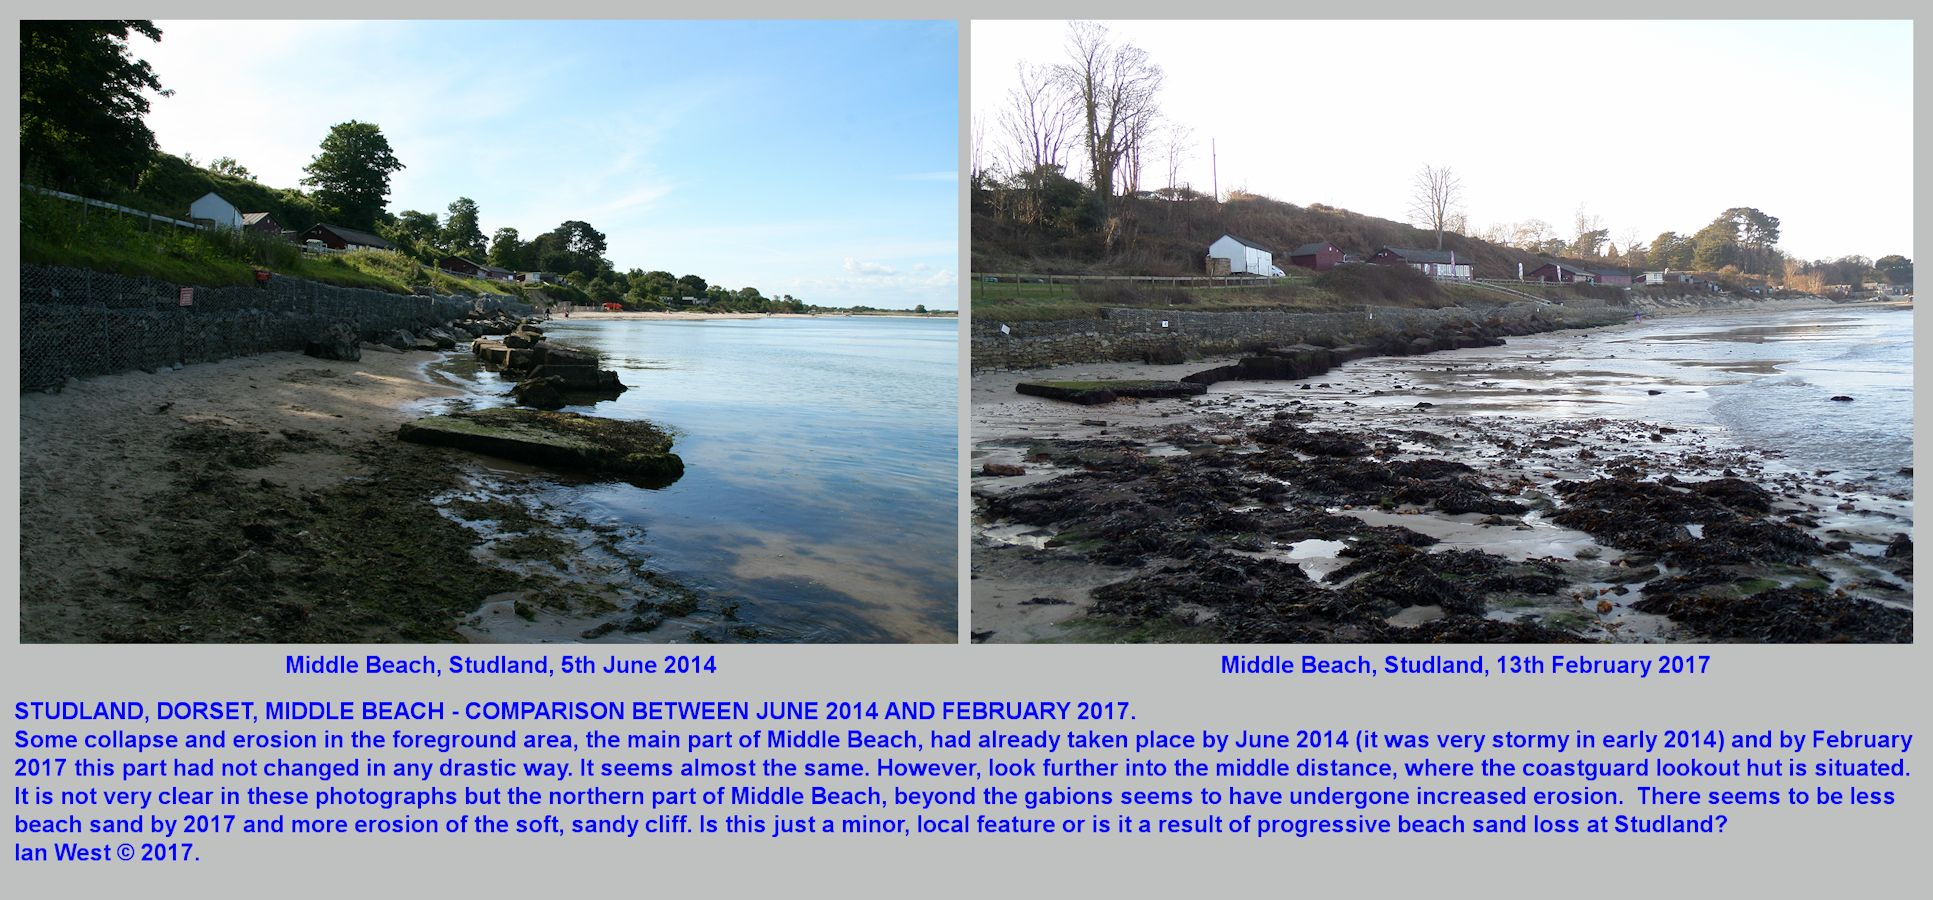 Middle Beach, Studland, Dorset, a comparison between the erosion state in June 2014 and in February 2017